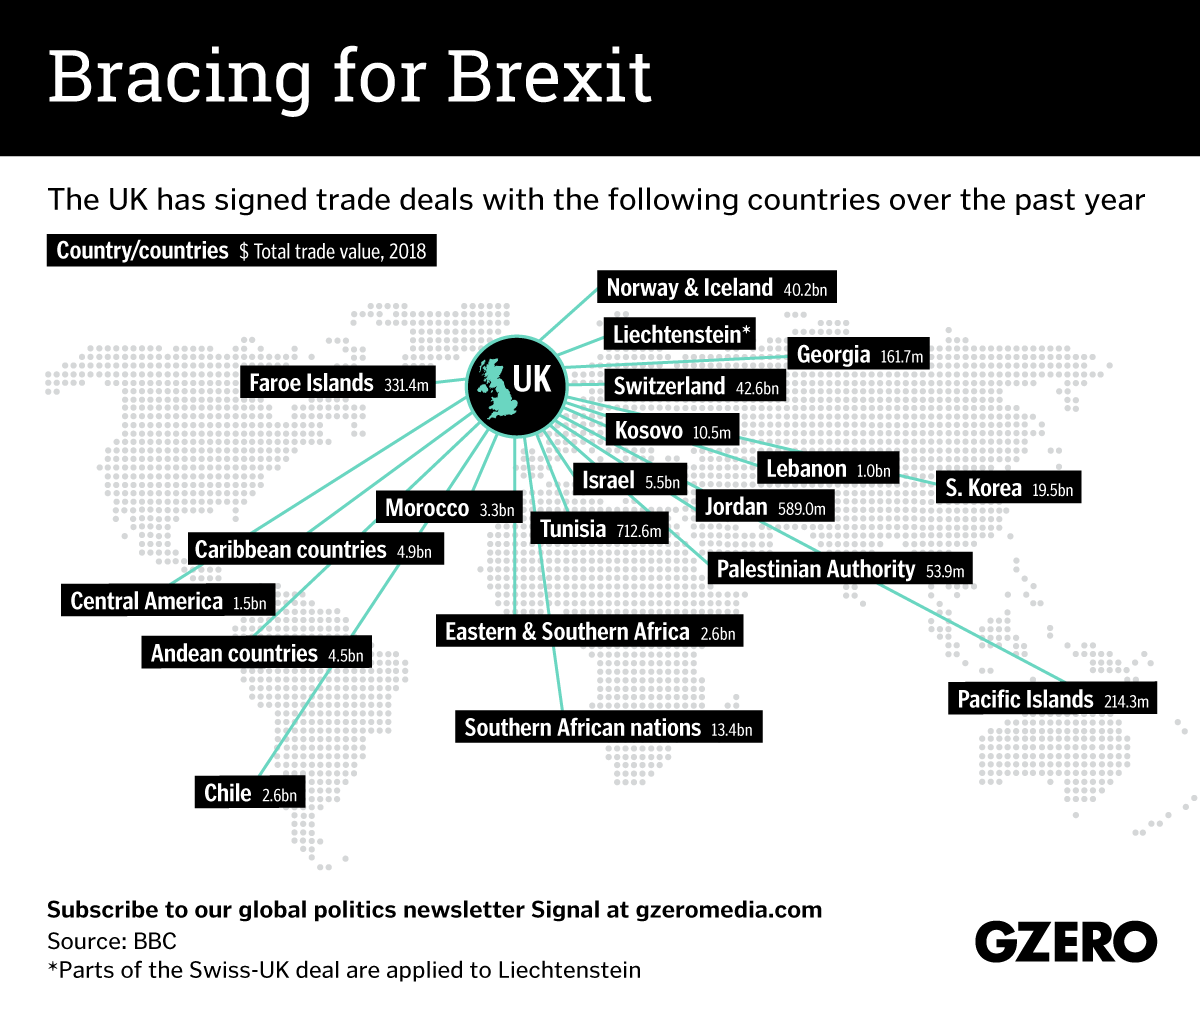 Graphic Truth: Bracing for Brexit